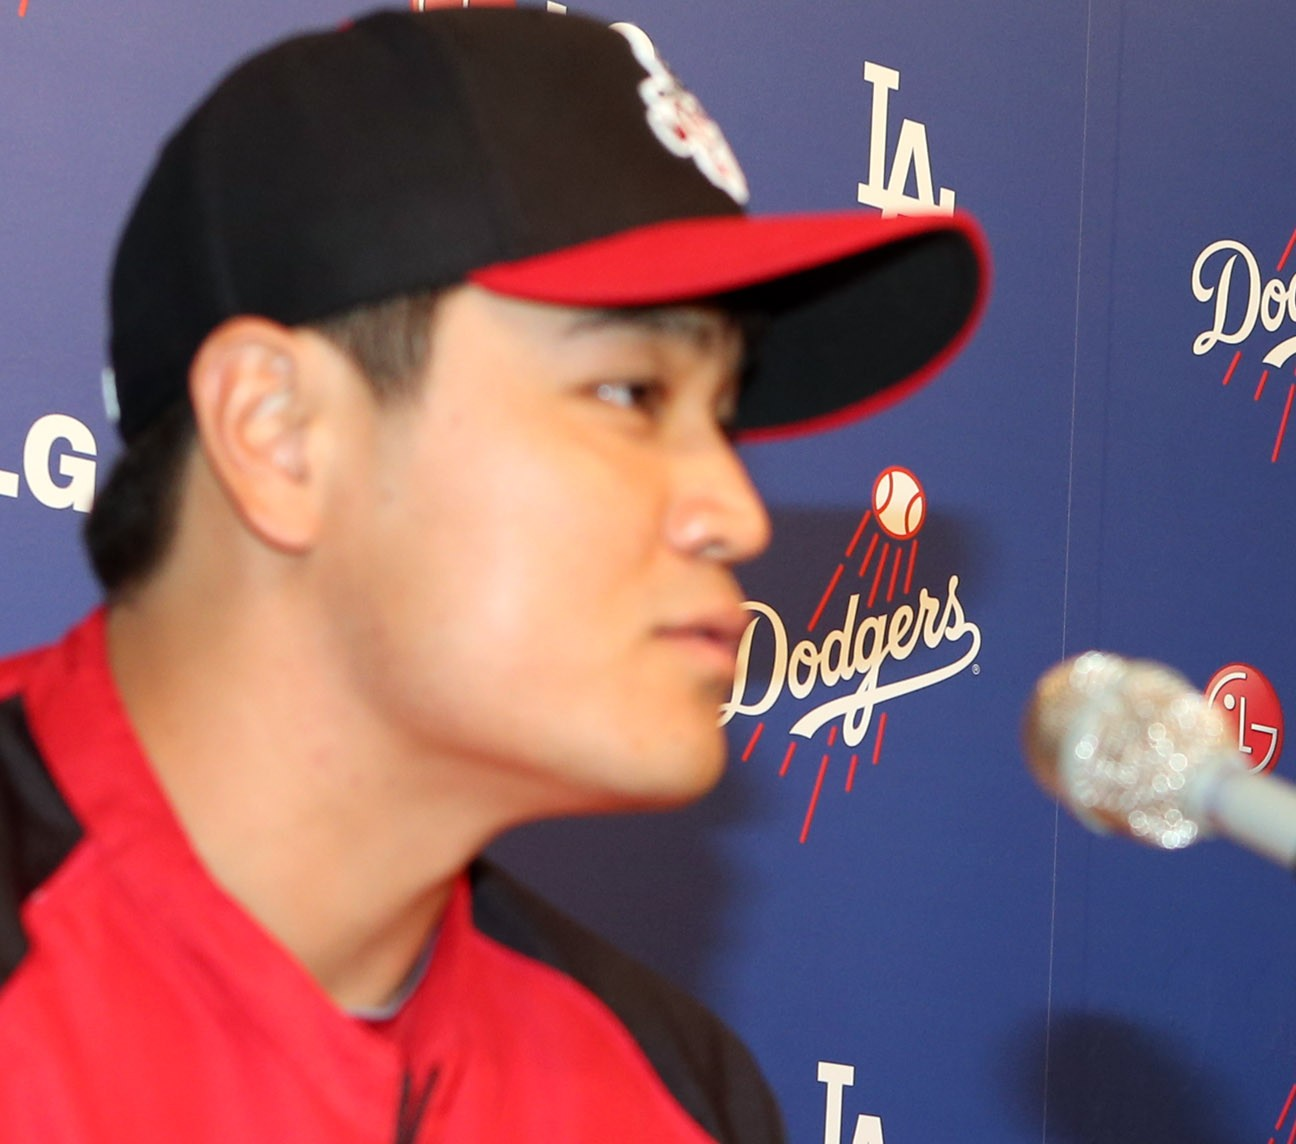 Just when will Shin-soo Choo, left, sign? Even Hyun-jin Ryu must be curious. (Korea Times File)